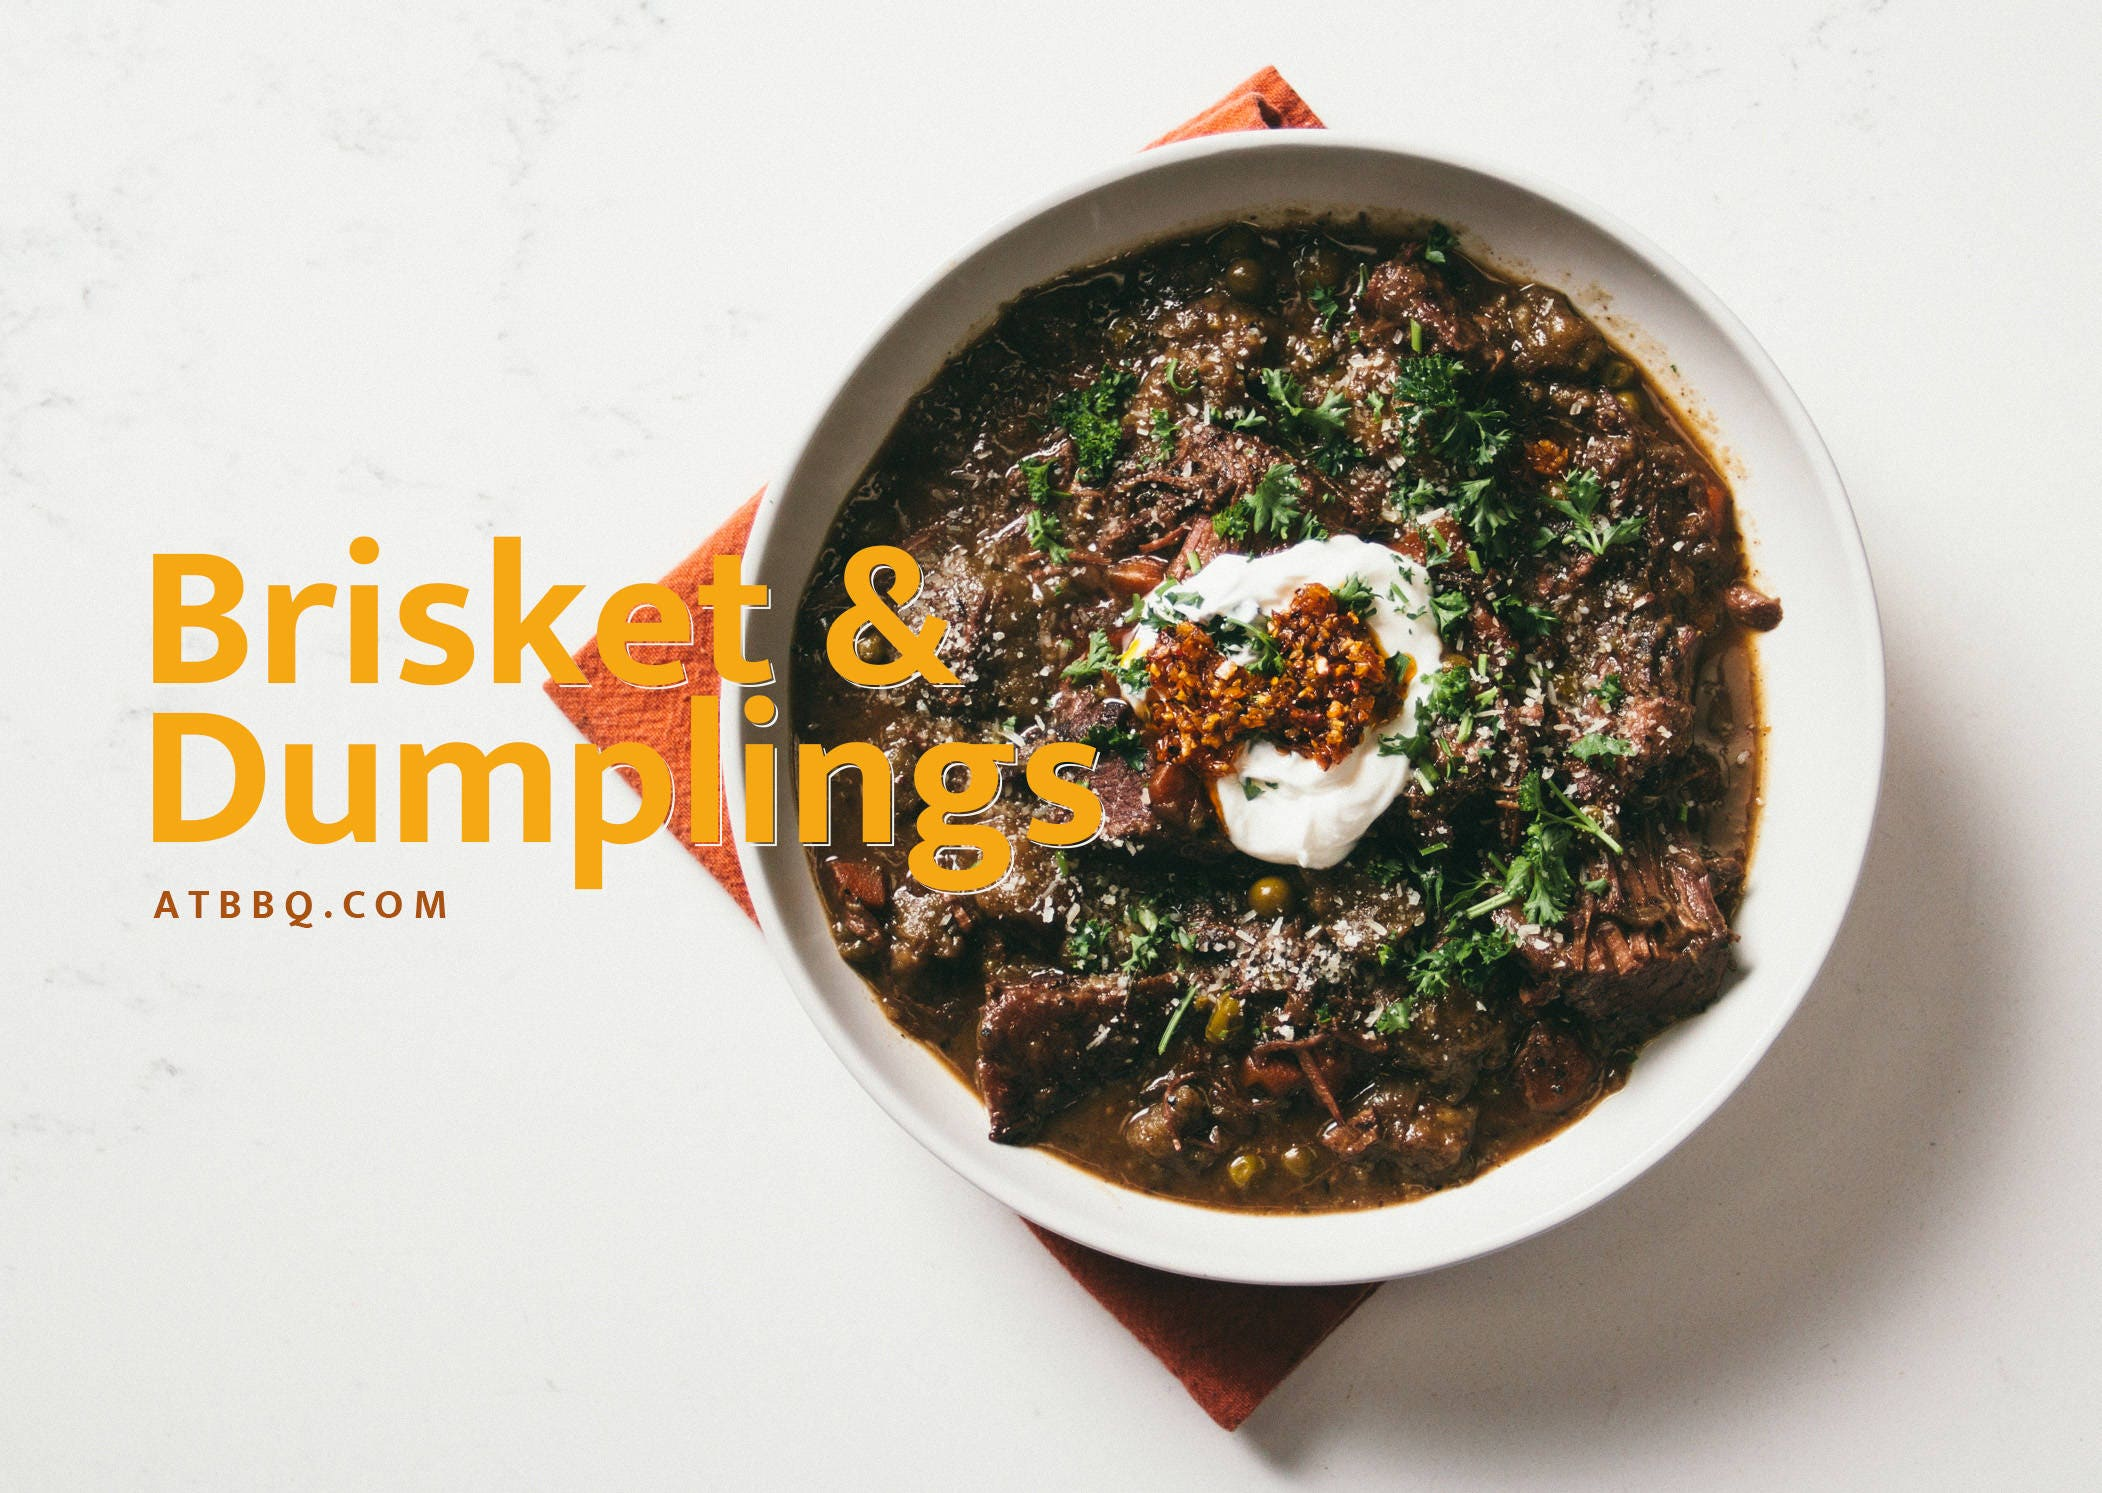 How to make Brisket & Dumplings